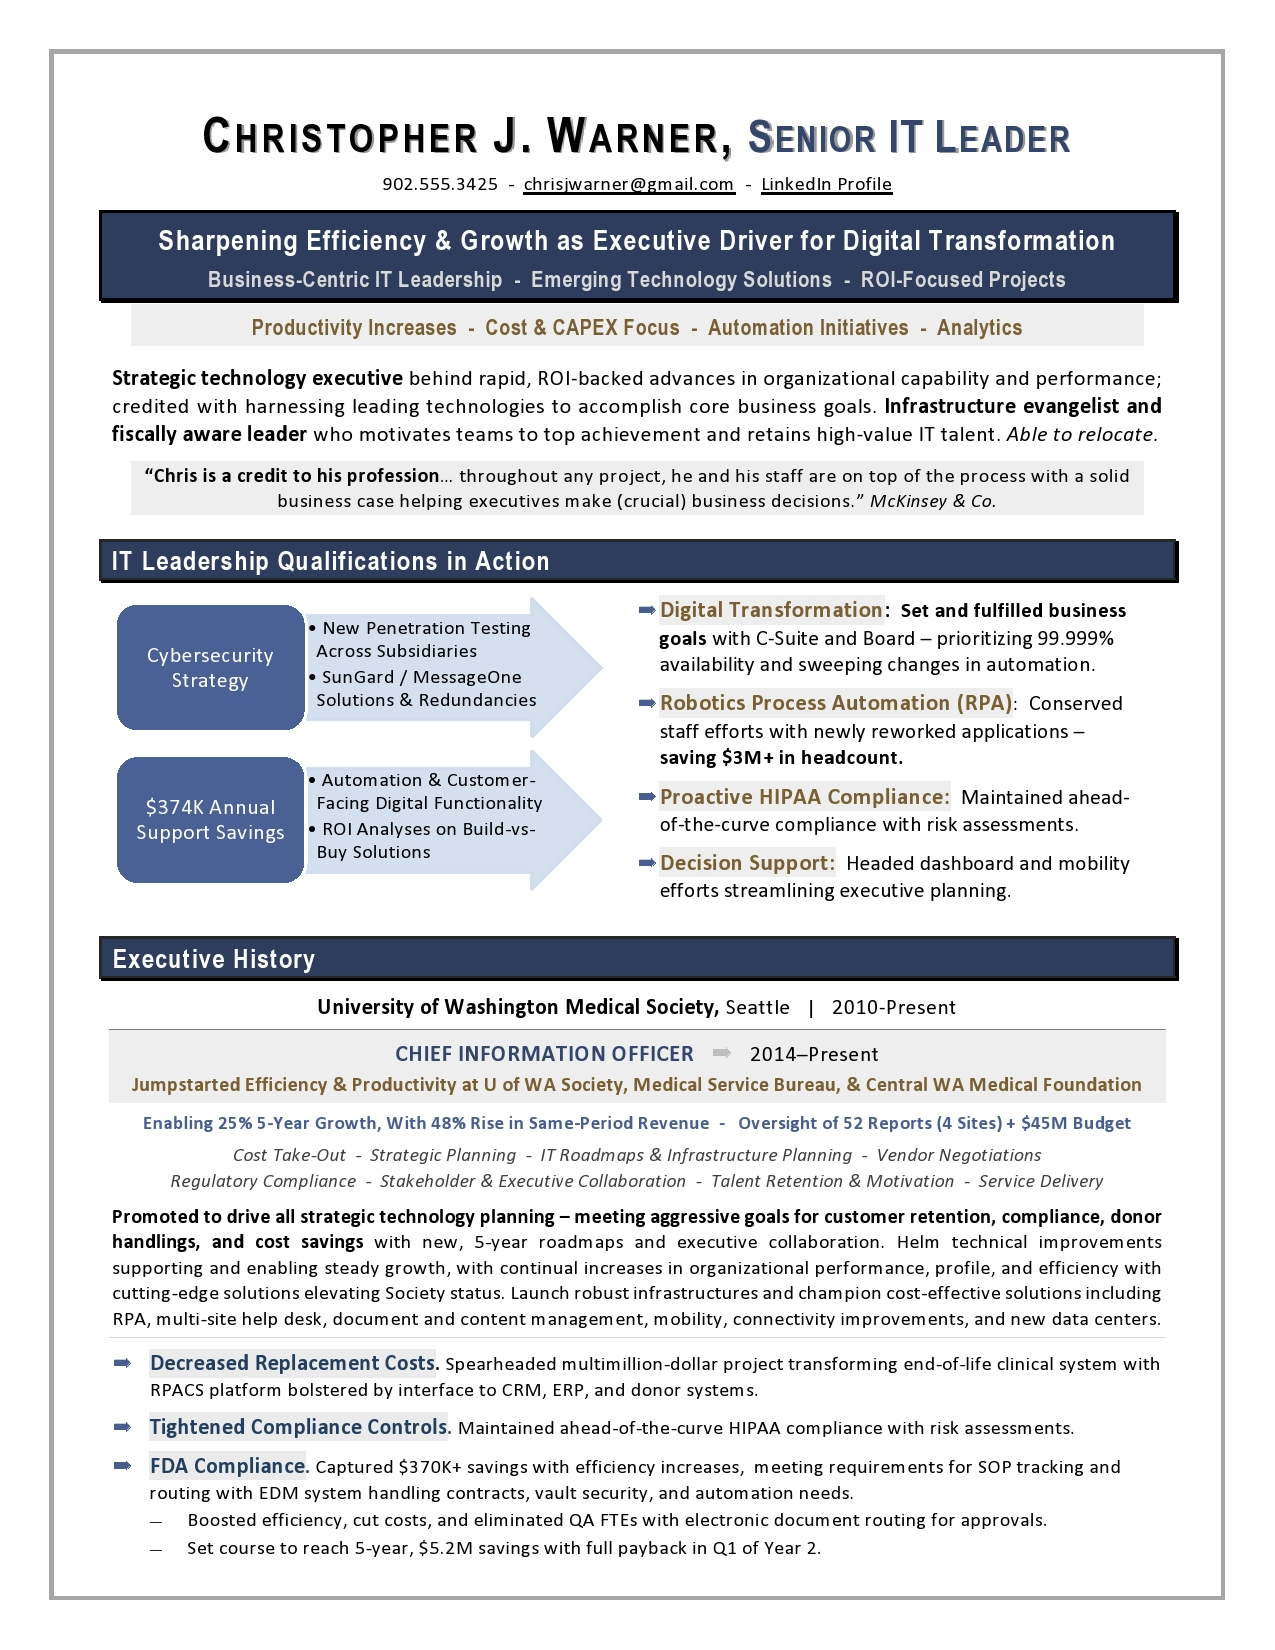 sample cio resume from executive writer it top healthcare laura proulx infographic Resume Top Executive Resume Writer